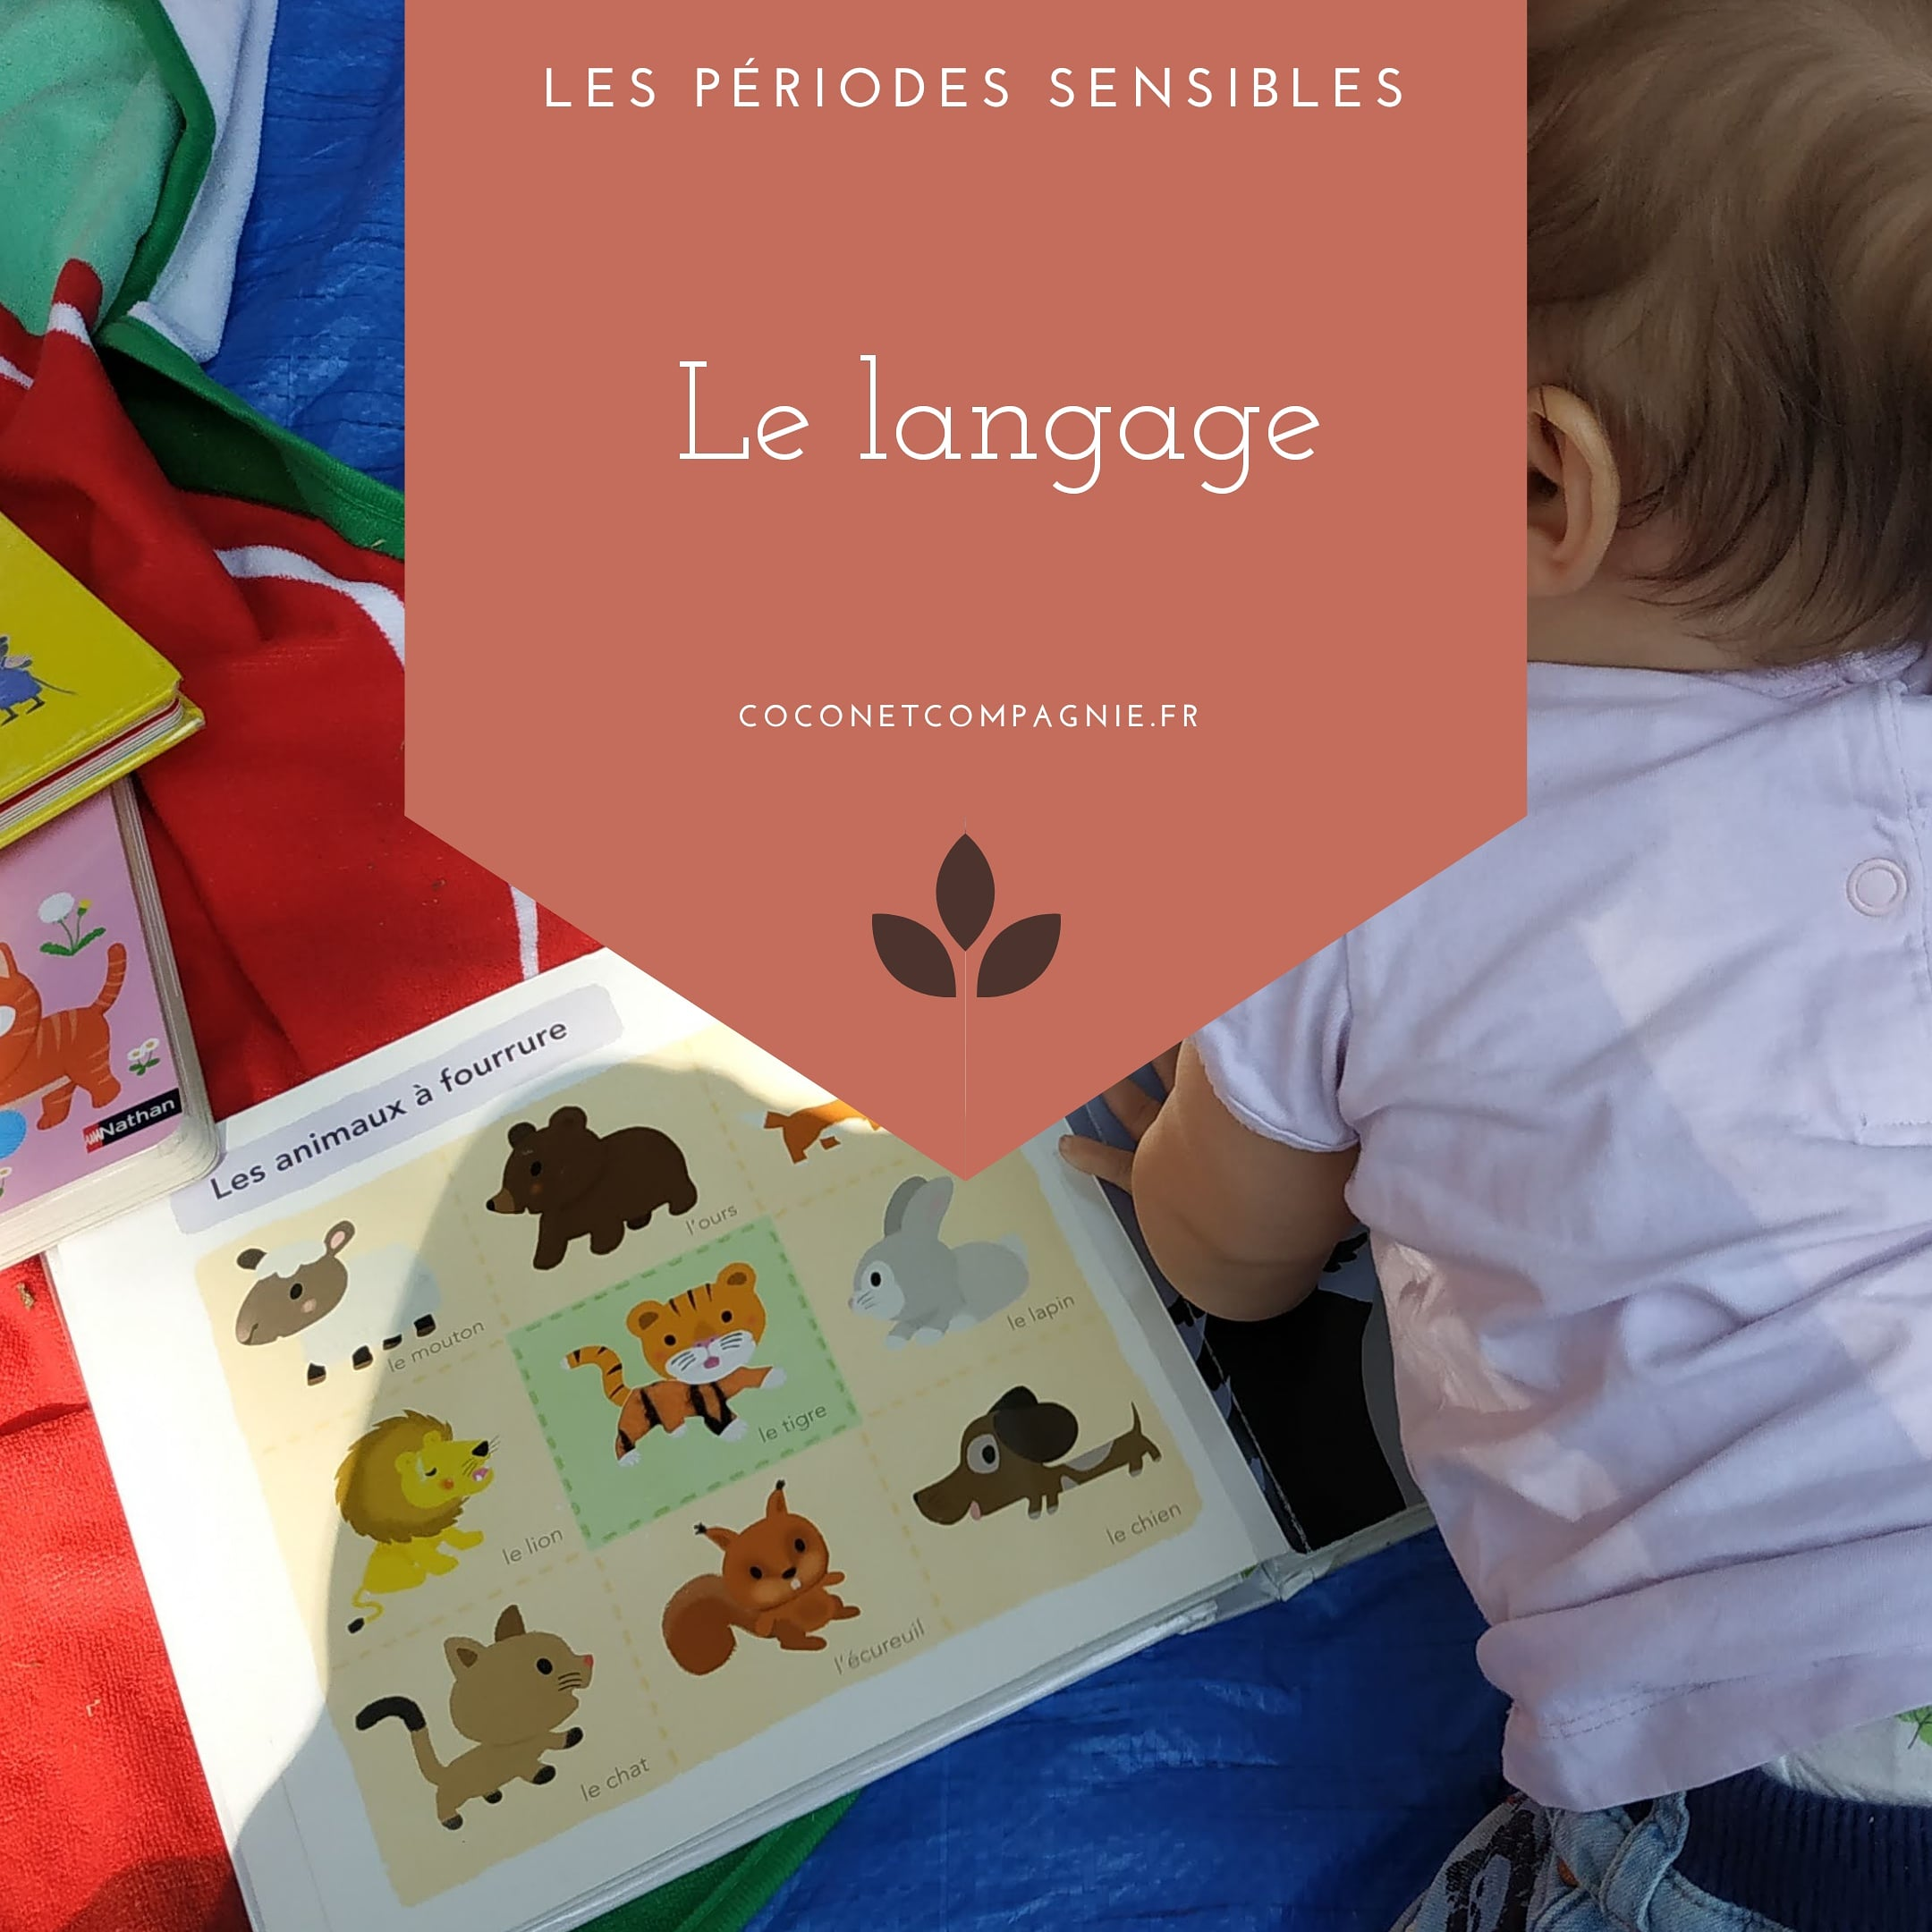 periode_sensible_langage_cocon_compagnie